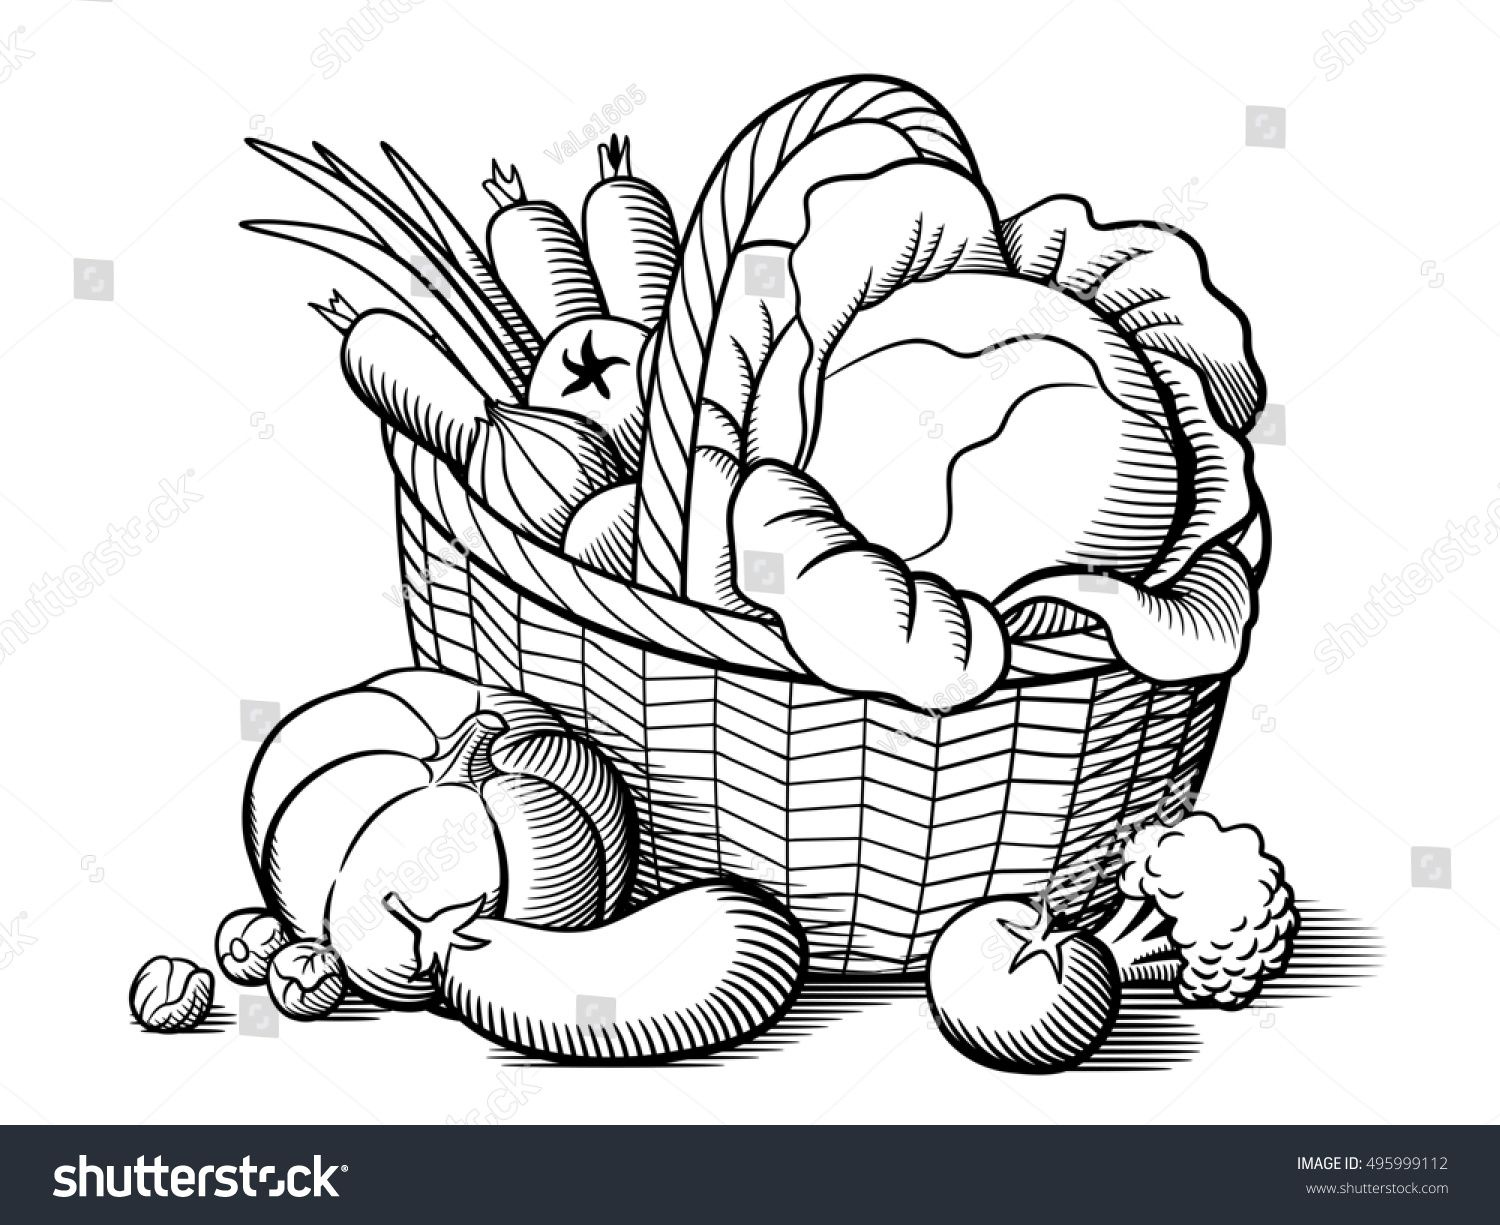 Image Result For Clipart Vegetables Black And White Jesus Art Drawing Art Drawings Sketches Creative Fruits Drawing